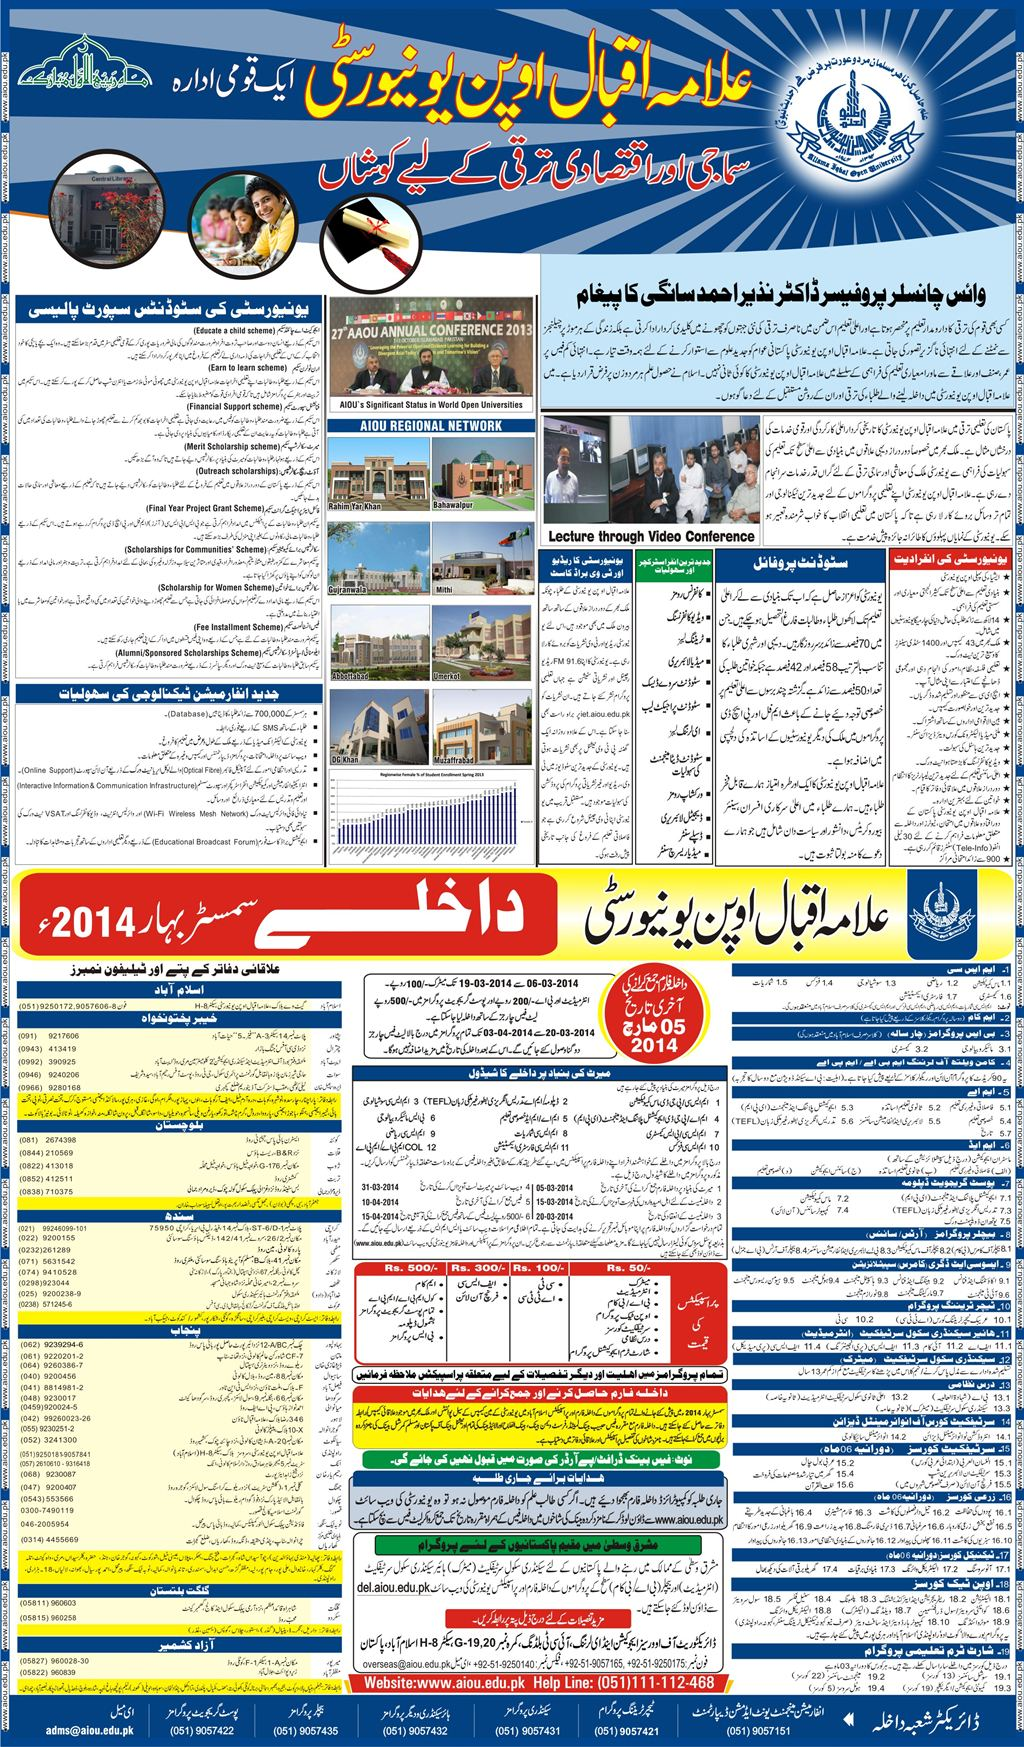 College writing service commission result 2014